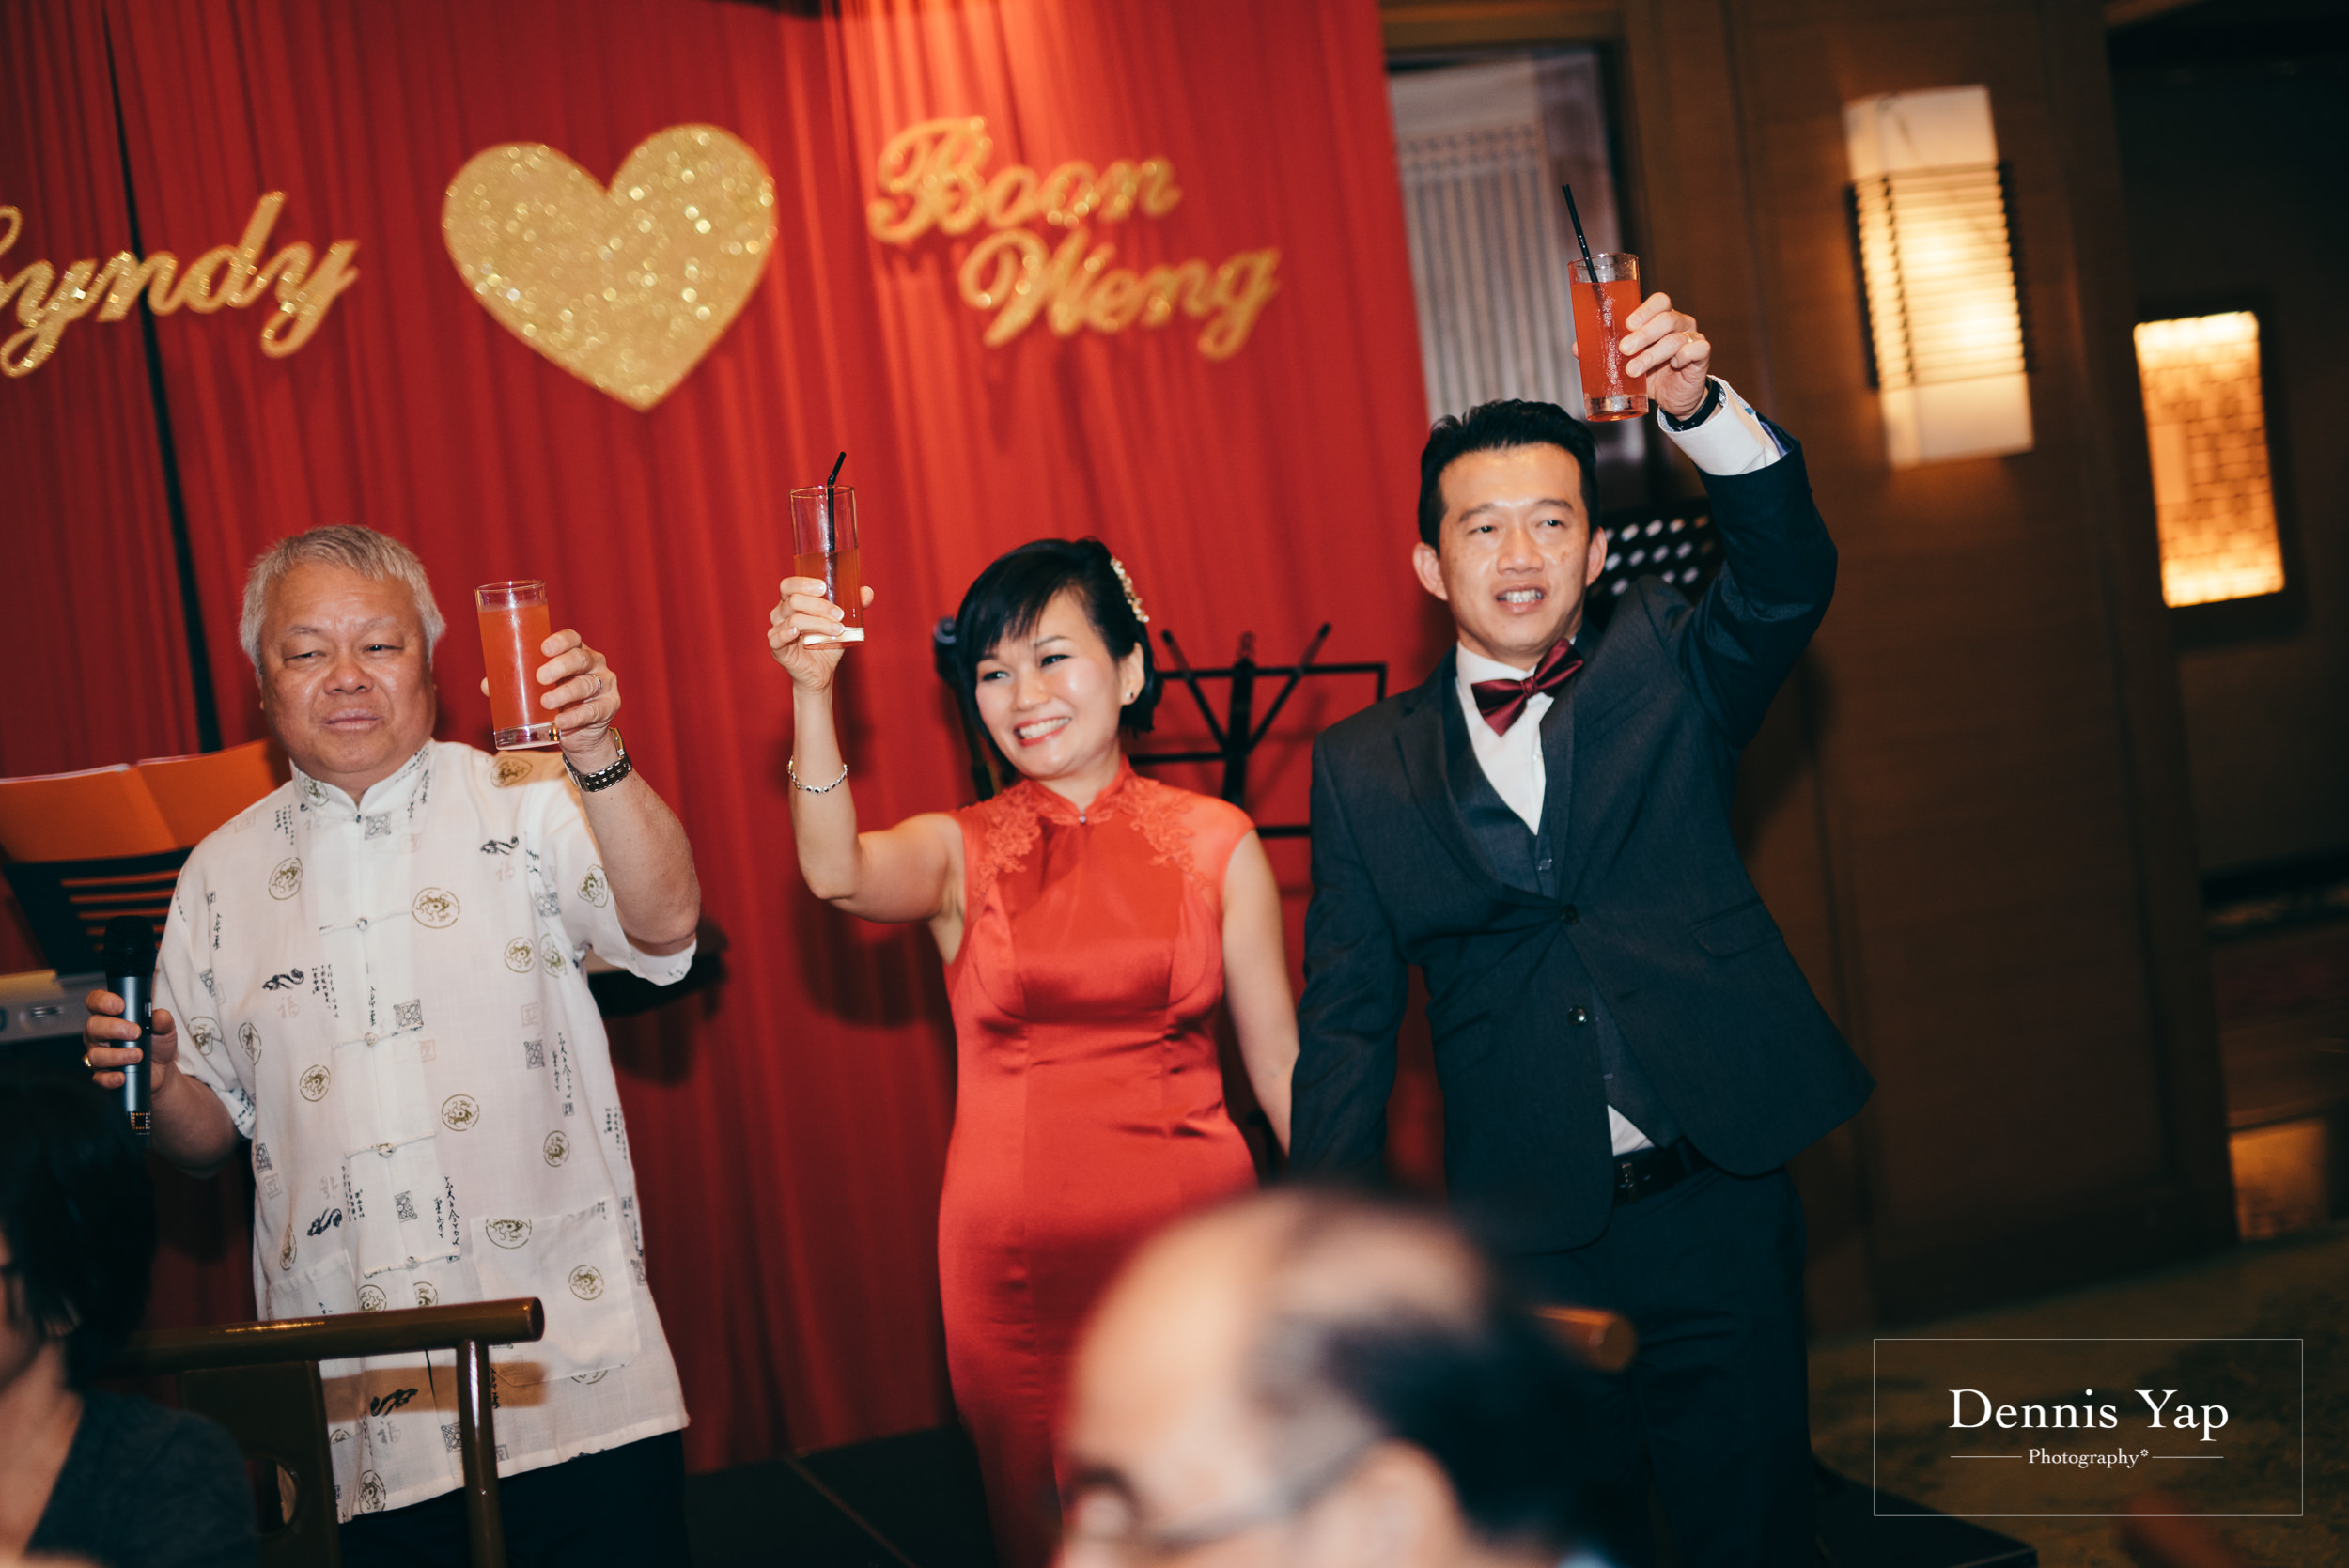 boon weng cyndy simple wedding gate crash luncheon shangrila kuala lumpur red traditional dennis yap photography-125.jpg